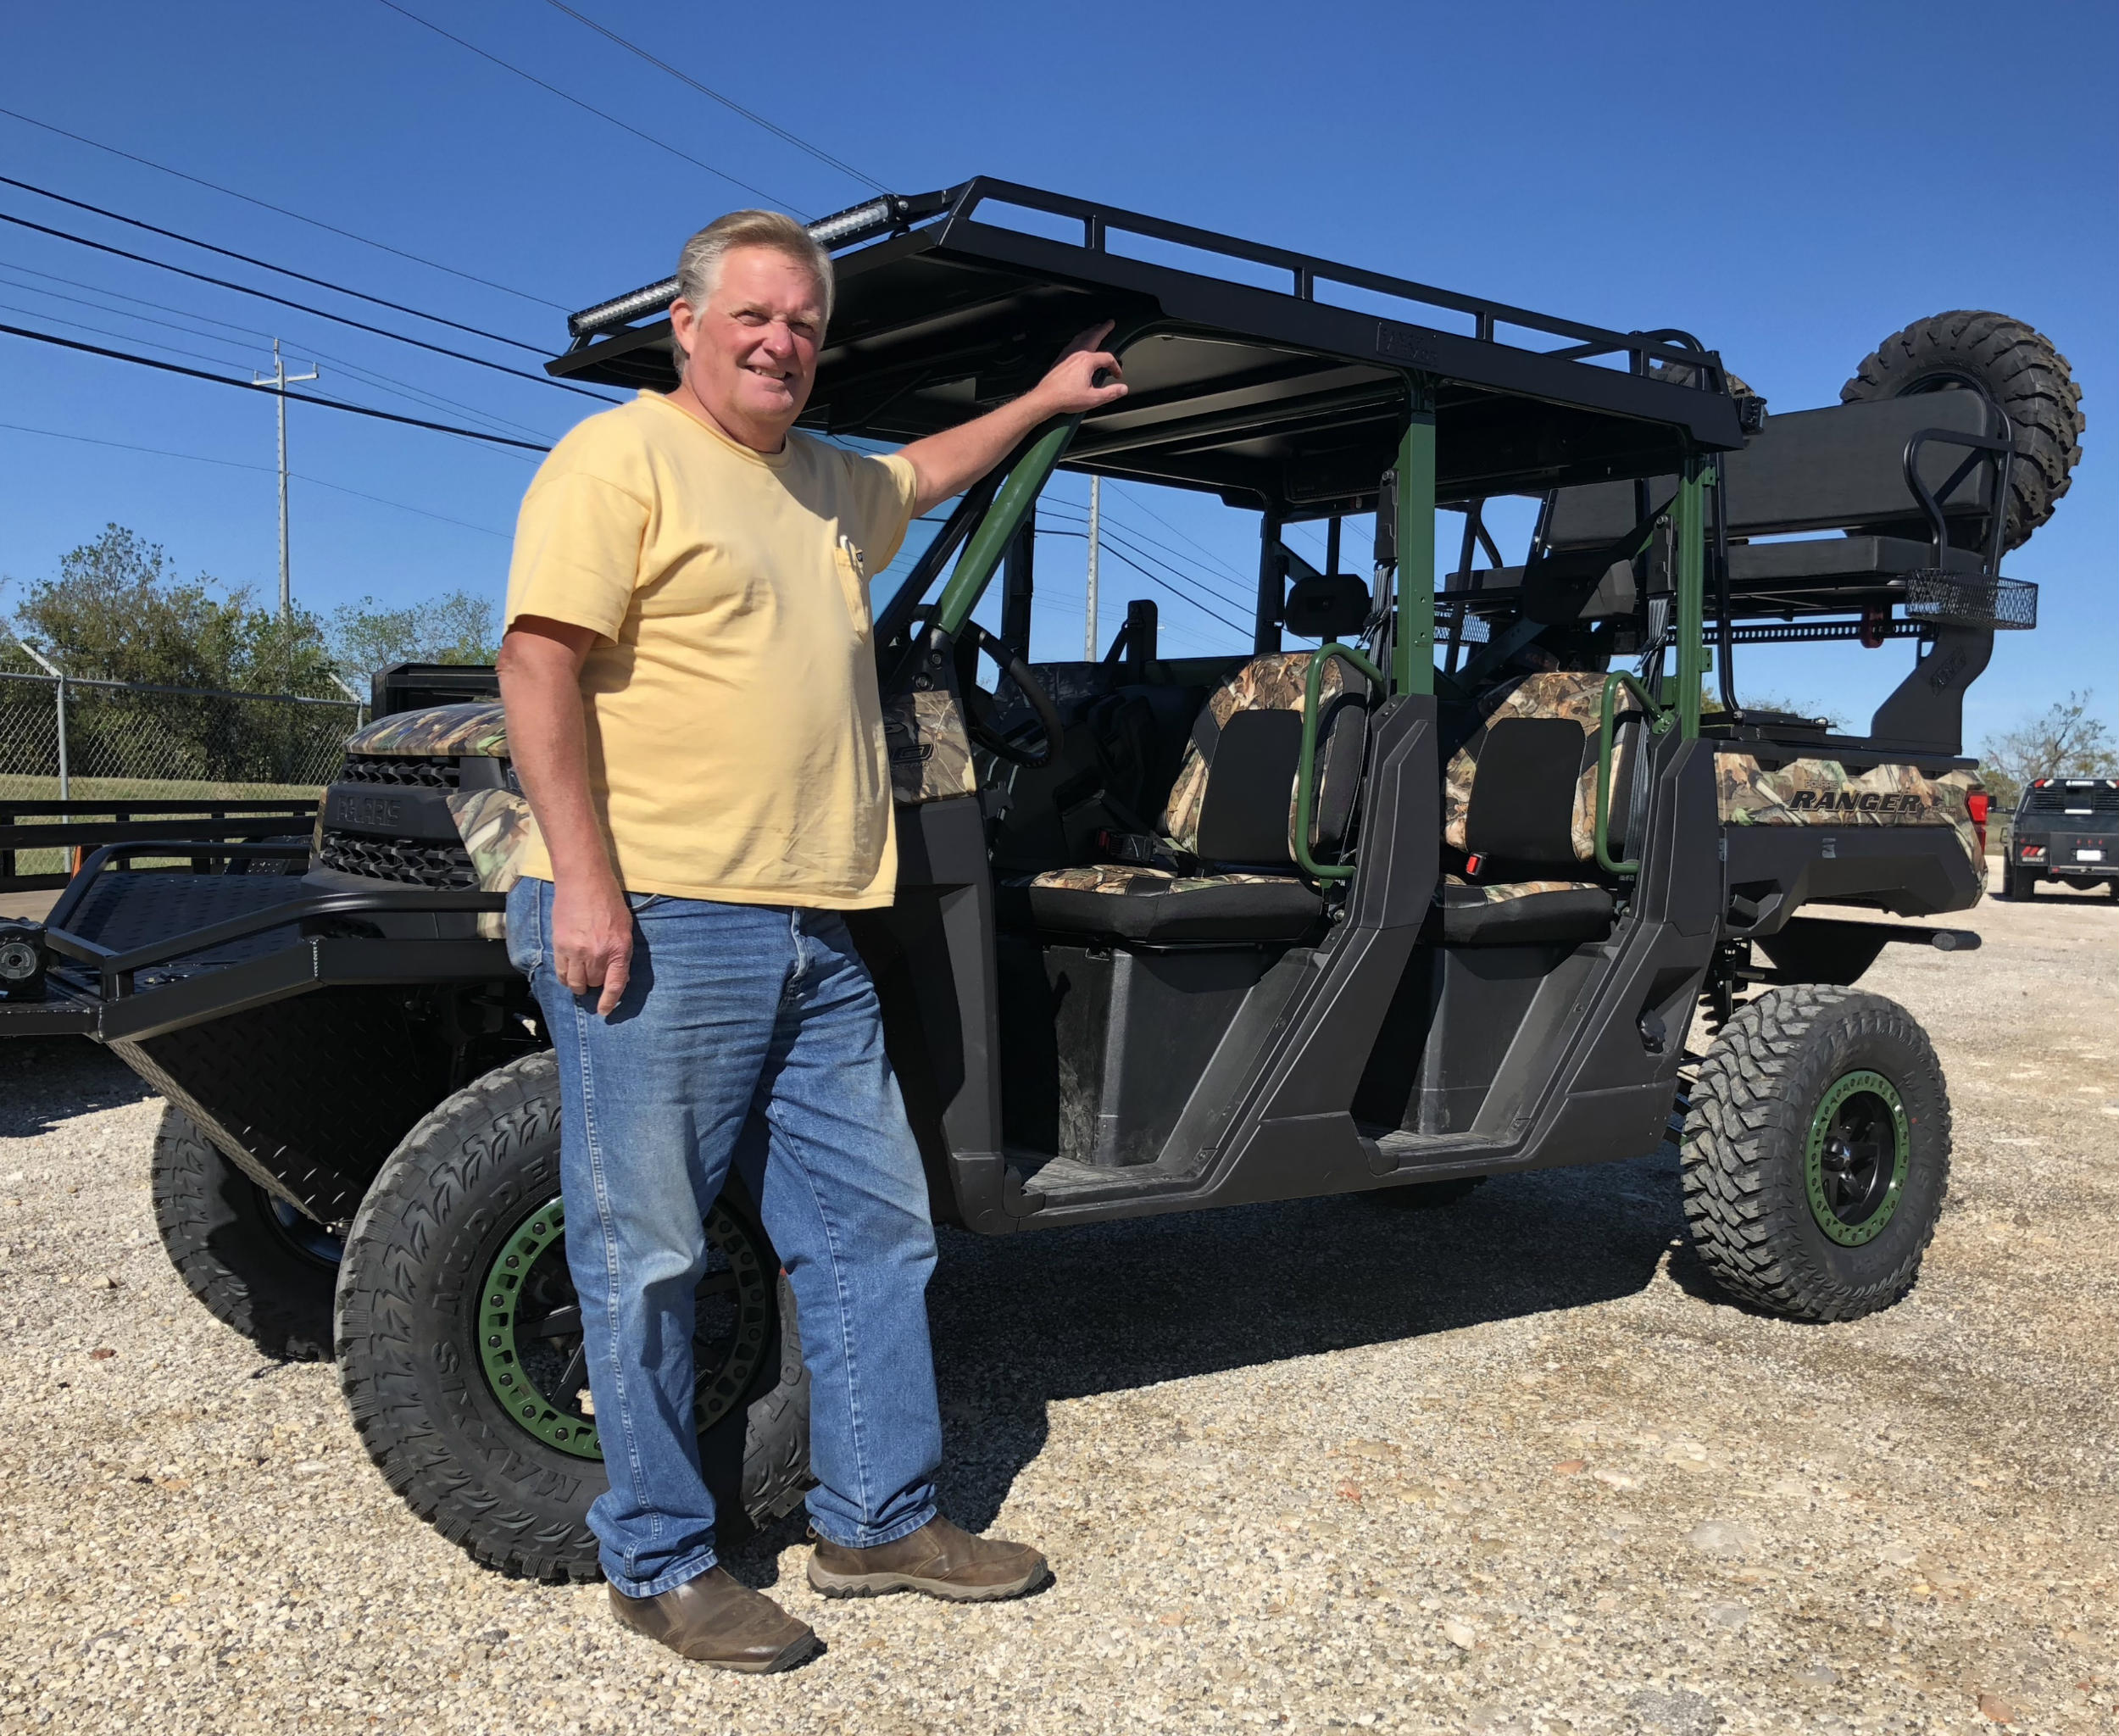 2019-polaris-range-1000-crew-metal-top-outfit-lifted-high-seat-ranch-armor-general-build.jpg